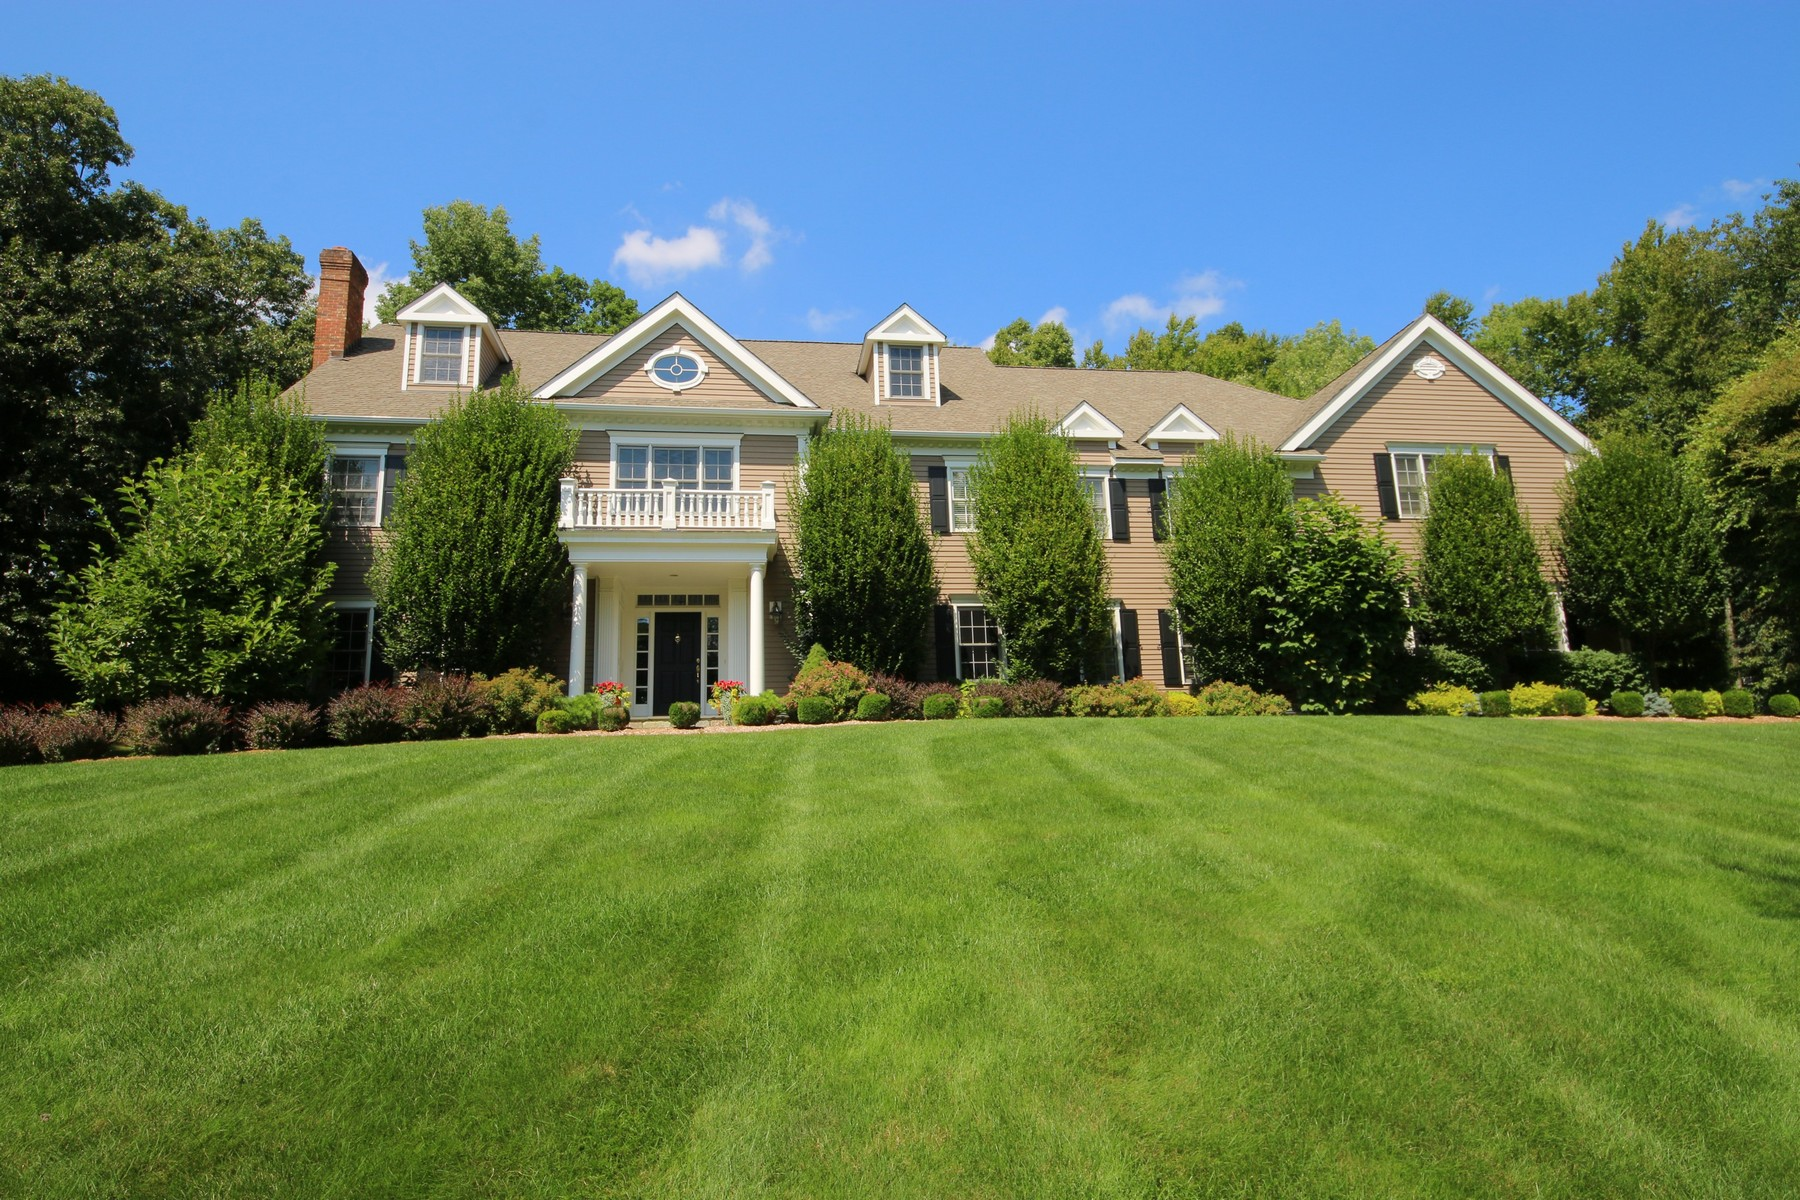 Single Family Home for Sale at Colonial in Coveted Equestrian Estate Area 14 Turtle Ridge Court Ridgefield, Connecticut, 06877 United States